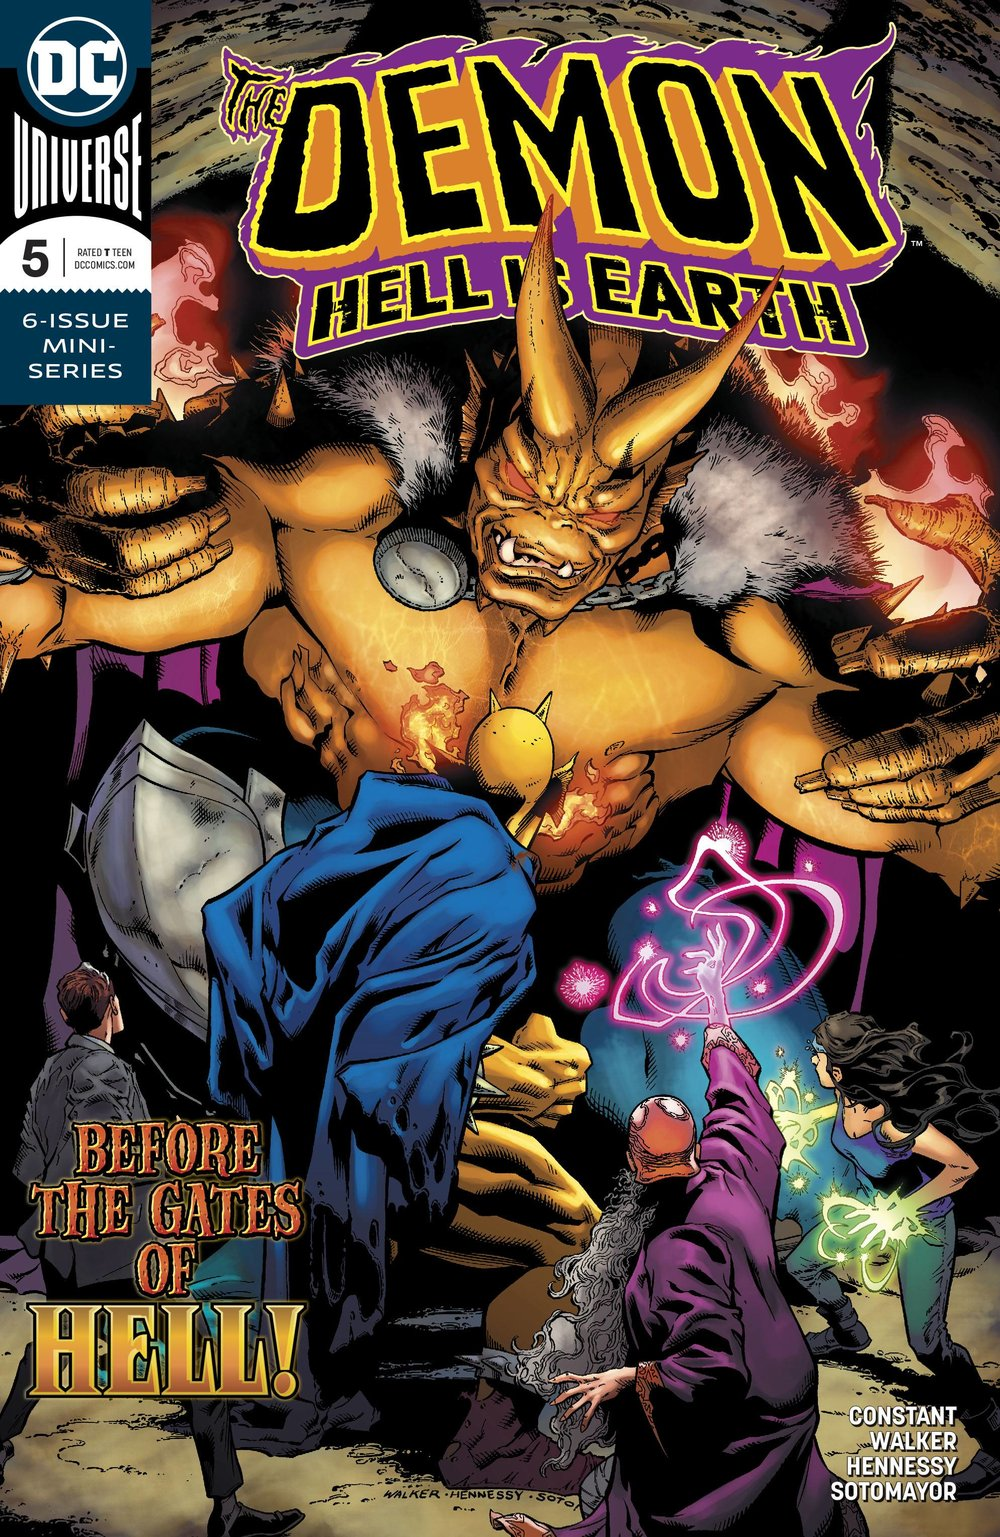 DEMON HELL IS EARTH 5 of 6.jpg